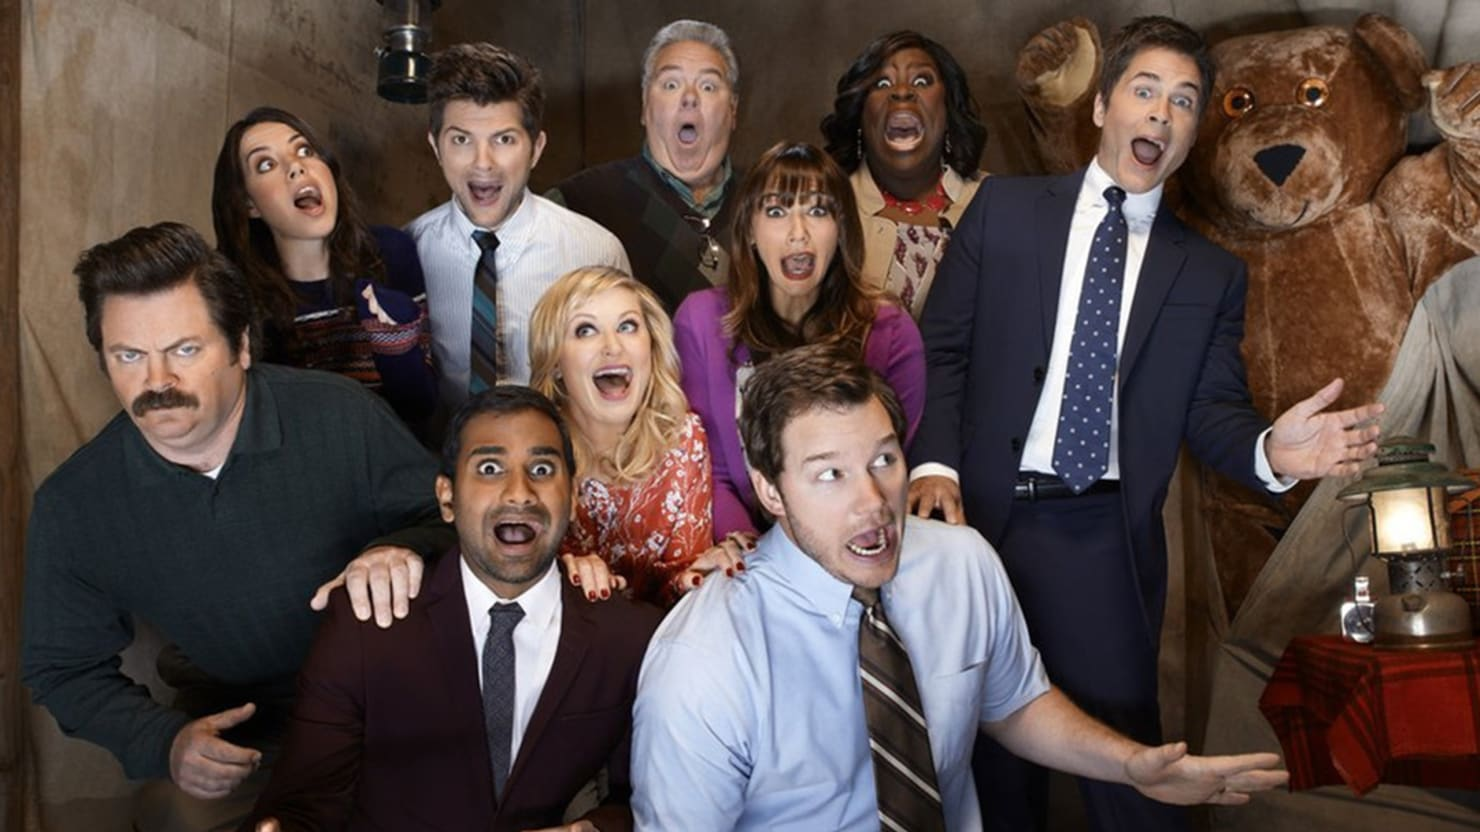 The Brilliant, Utterly Depressing 'Parks and Rec' Premiere—and the End of a Comedy Era